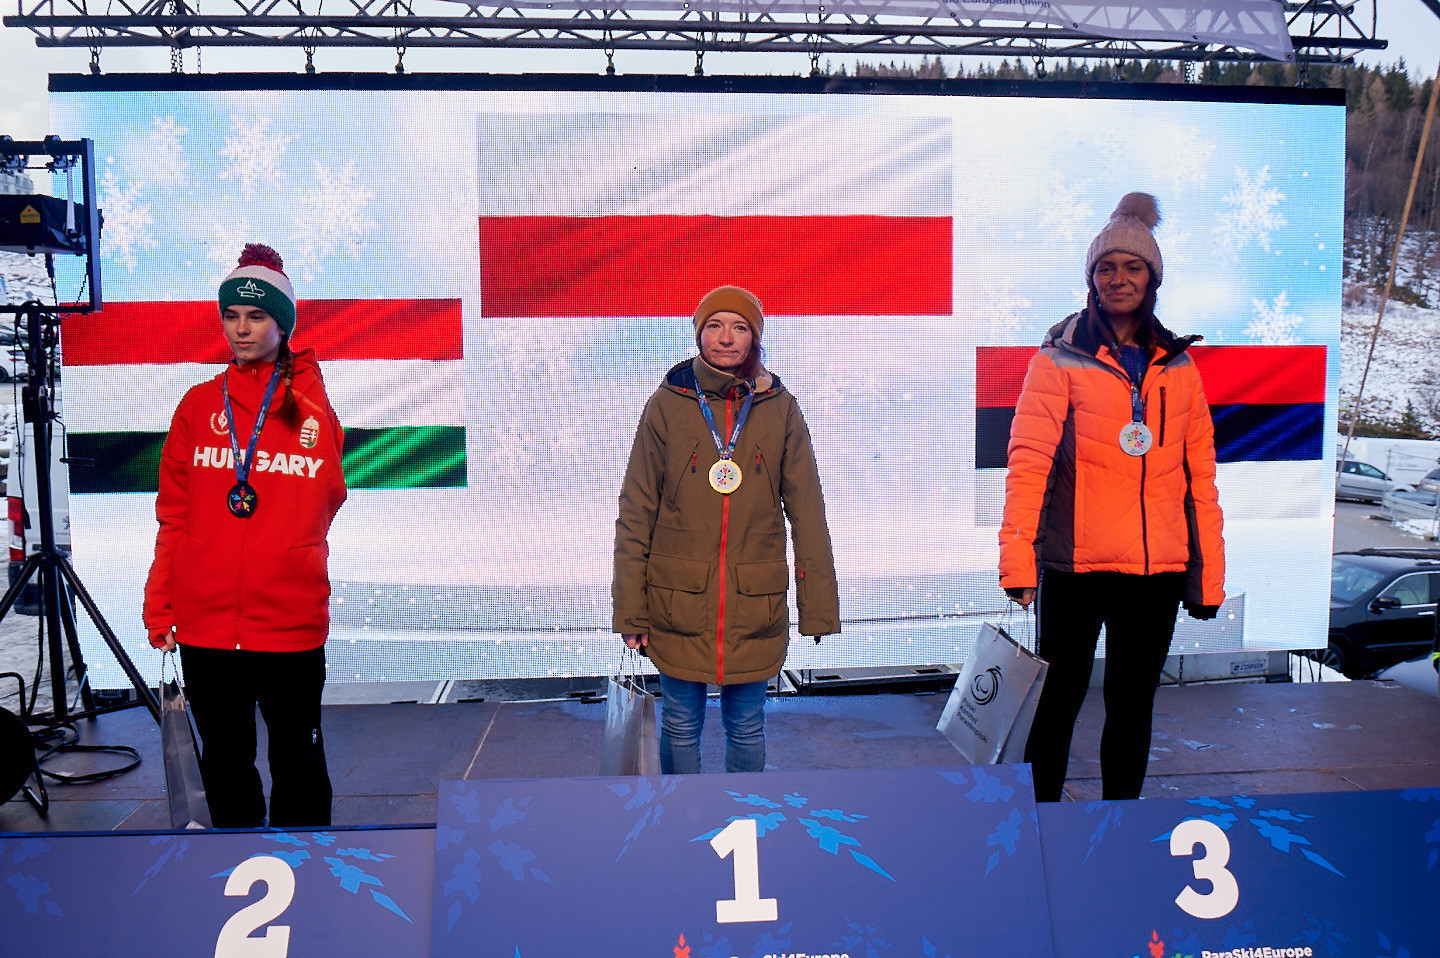 Home snowboarder Kotzian among winners as European Winter Para Sports Event concludes